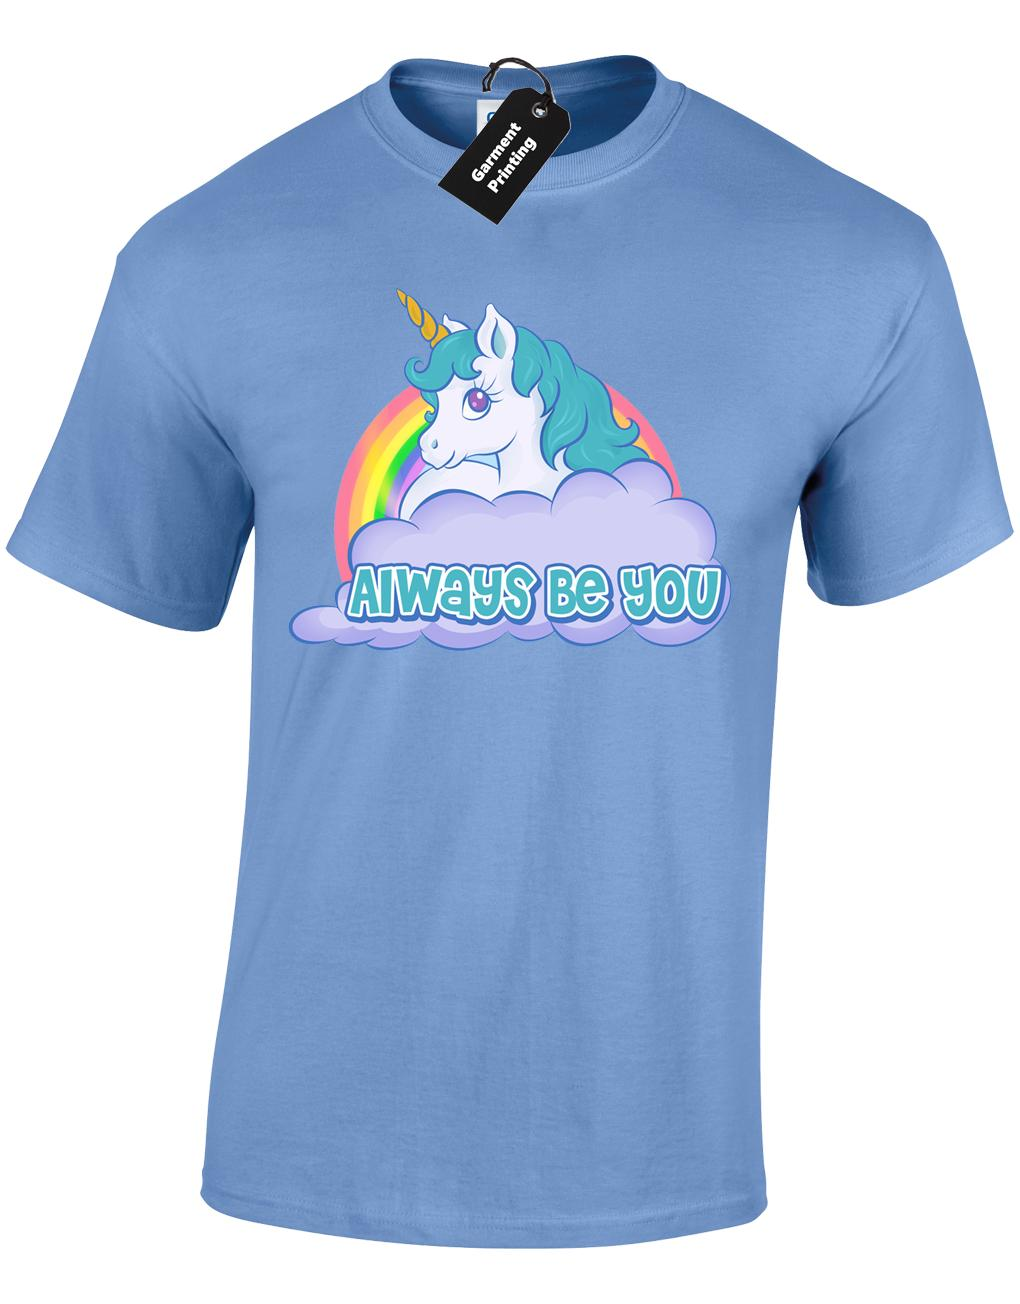 4be743e3 ALWAYS BE YOU MENS T SHIRT THE FUNNY INTELLIGENCE ROCK UNICORN CENTRAL  COLOUR Funny Unisex Long Sleeve T Shirts Vintage T Shirts From Young_ten,  ...